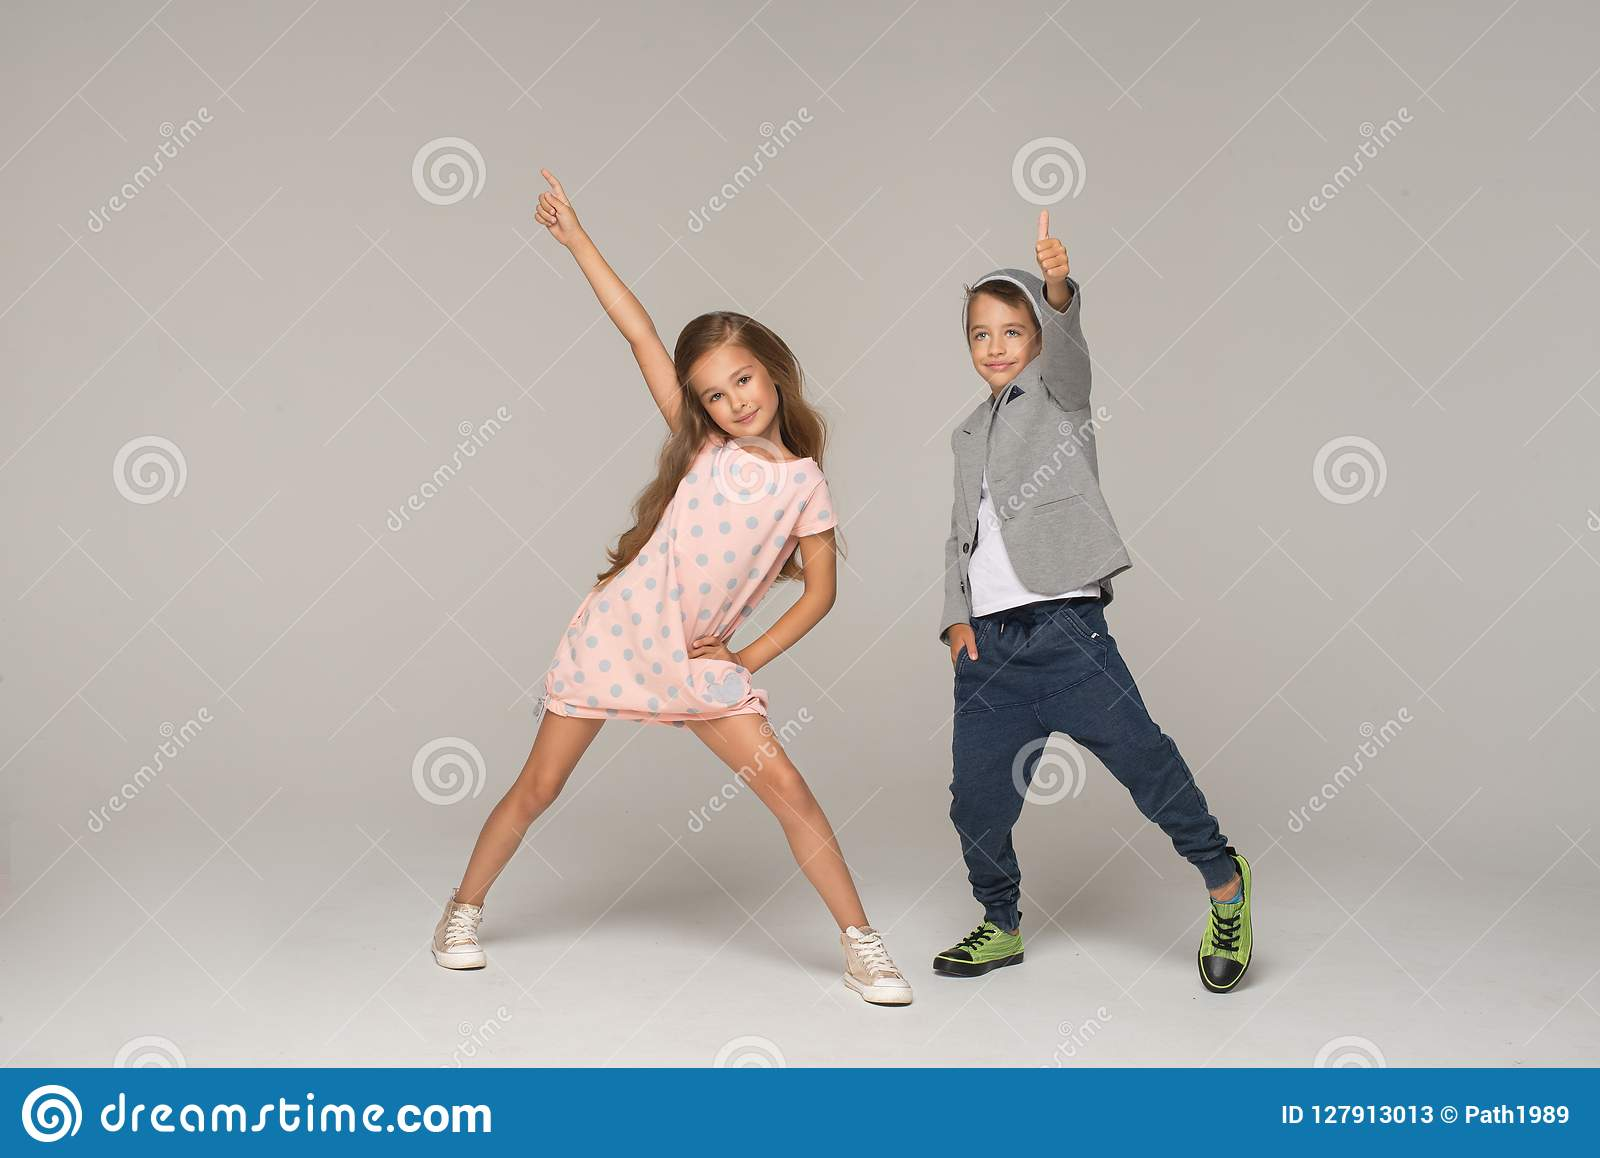 Happy dancing kids.